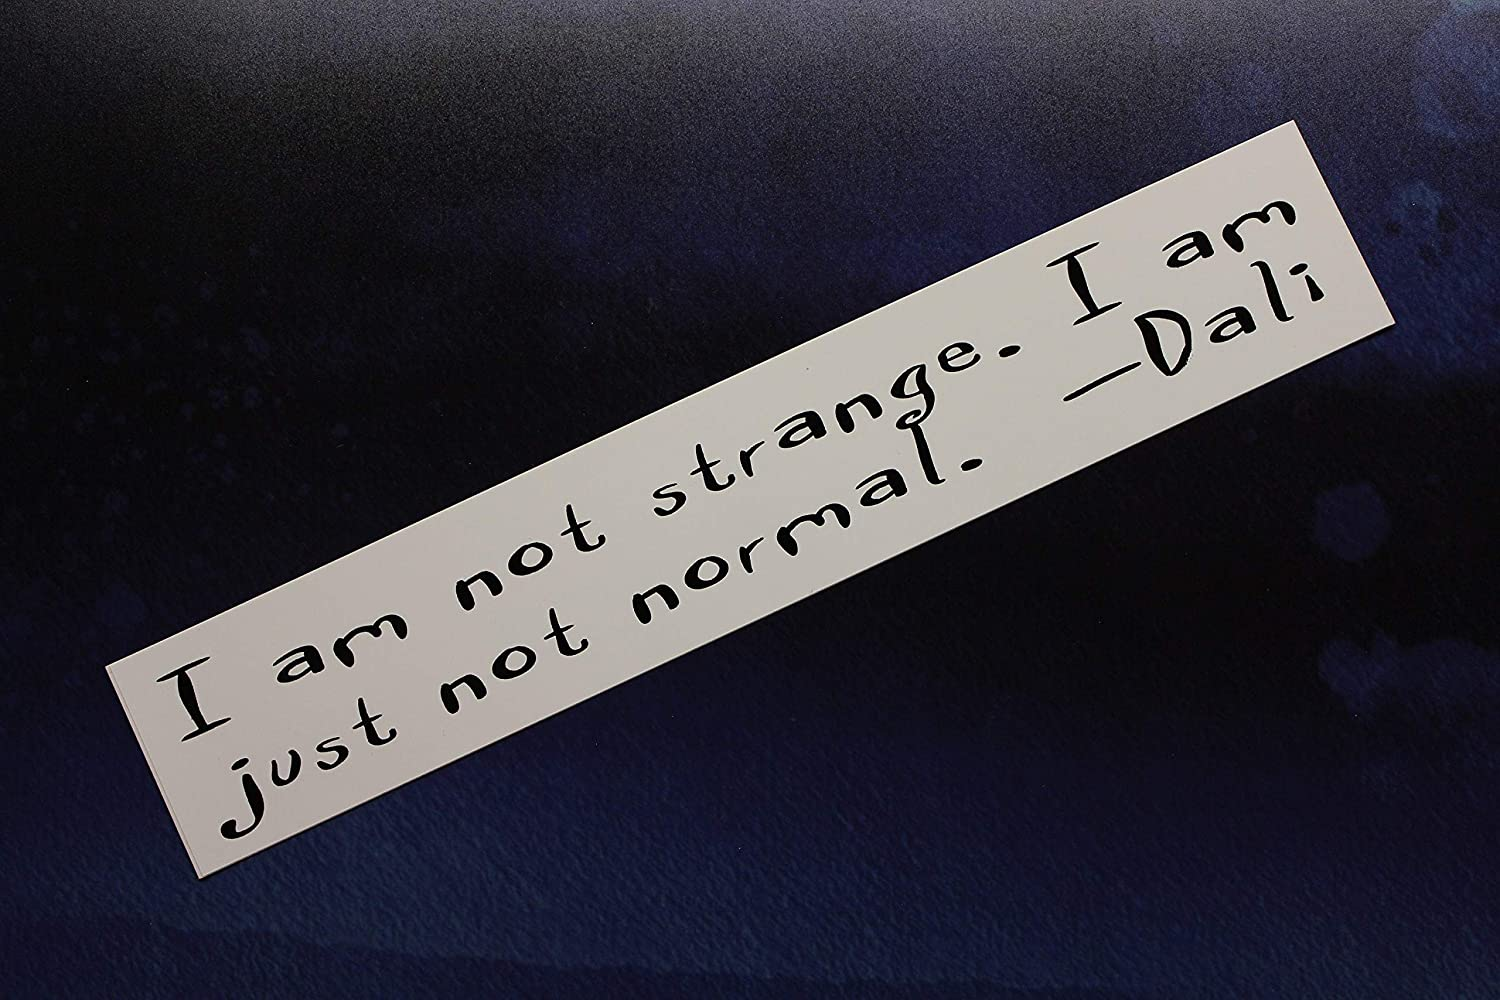 PotteLove Salvador Dali Vinyl Sticker I am not Strange. I am just not Normal. Laptop Bumper Bike car, 5 Inches Height